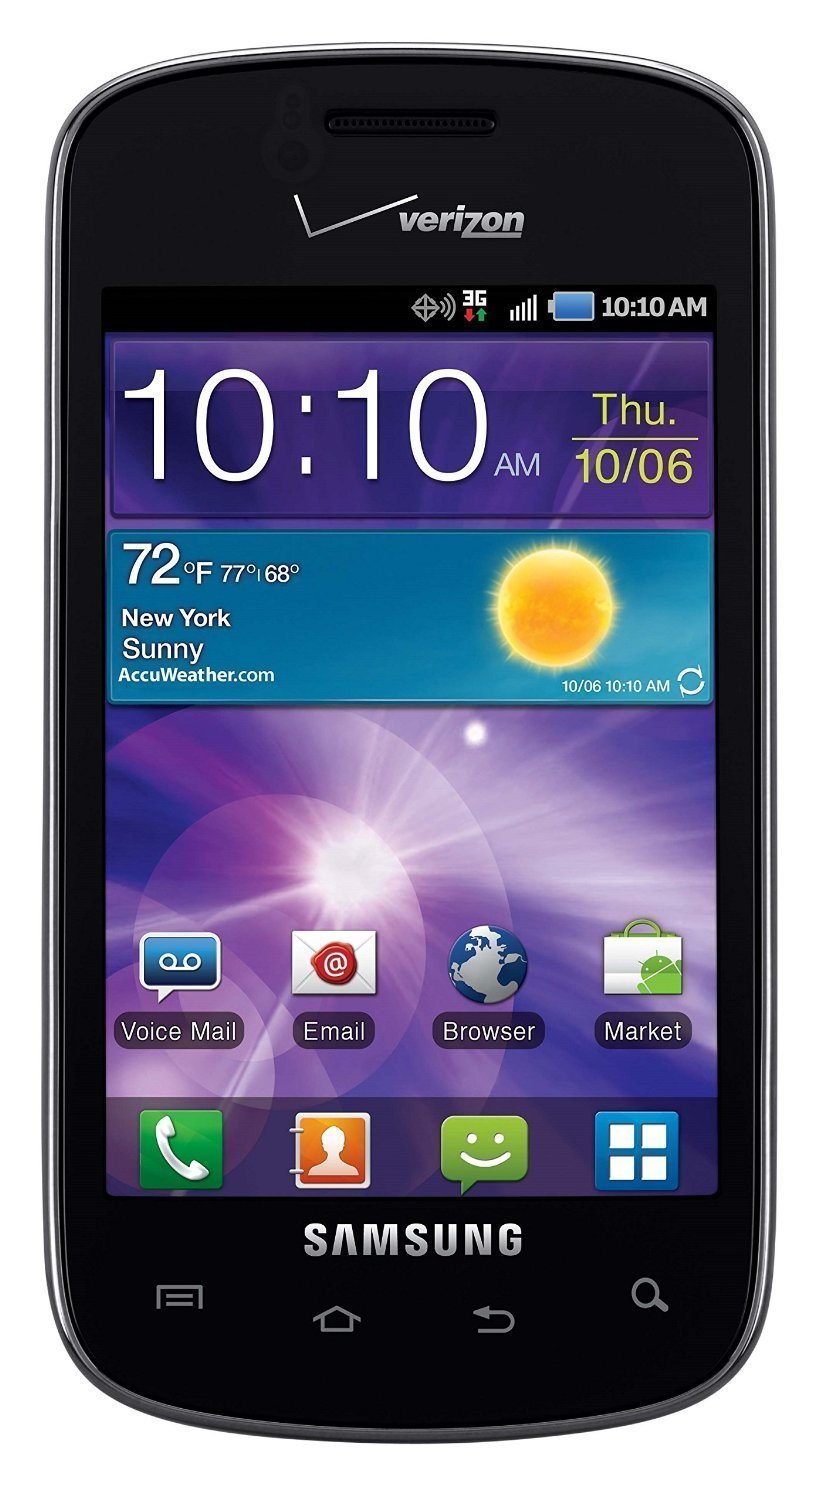 Samsung Illusion I110 Verizon CDMA Prepaid Android Cell Phone - Black/Silver